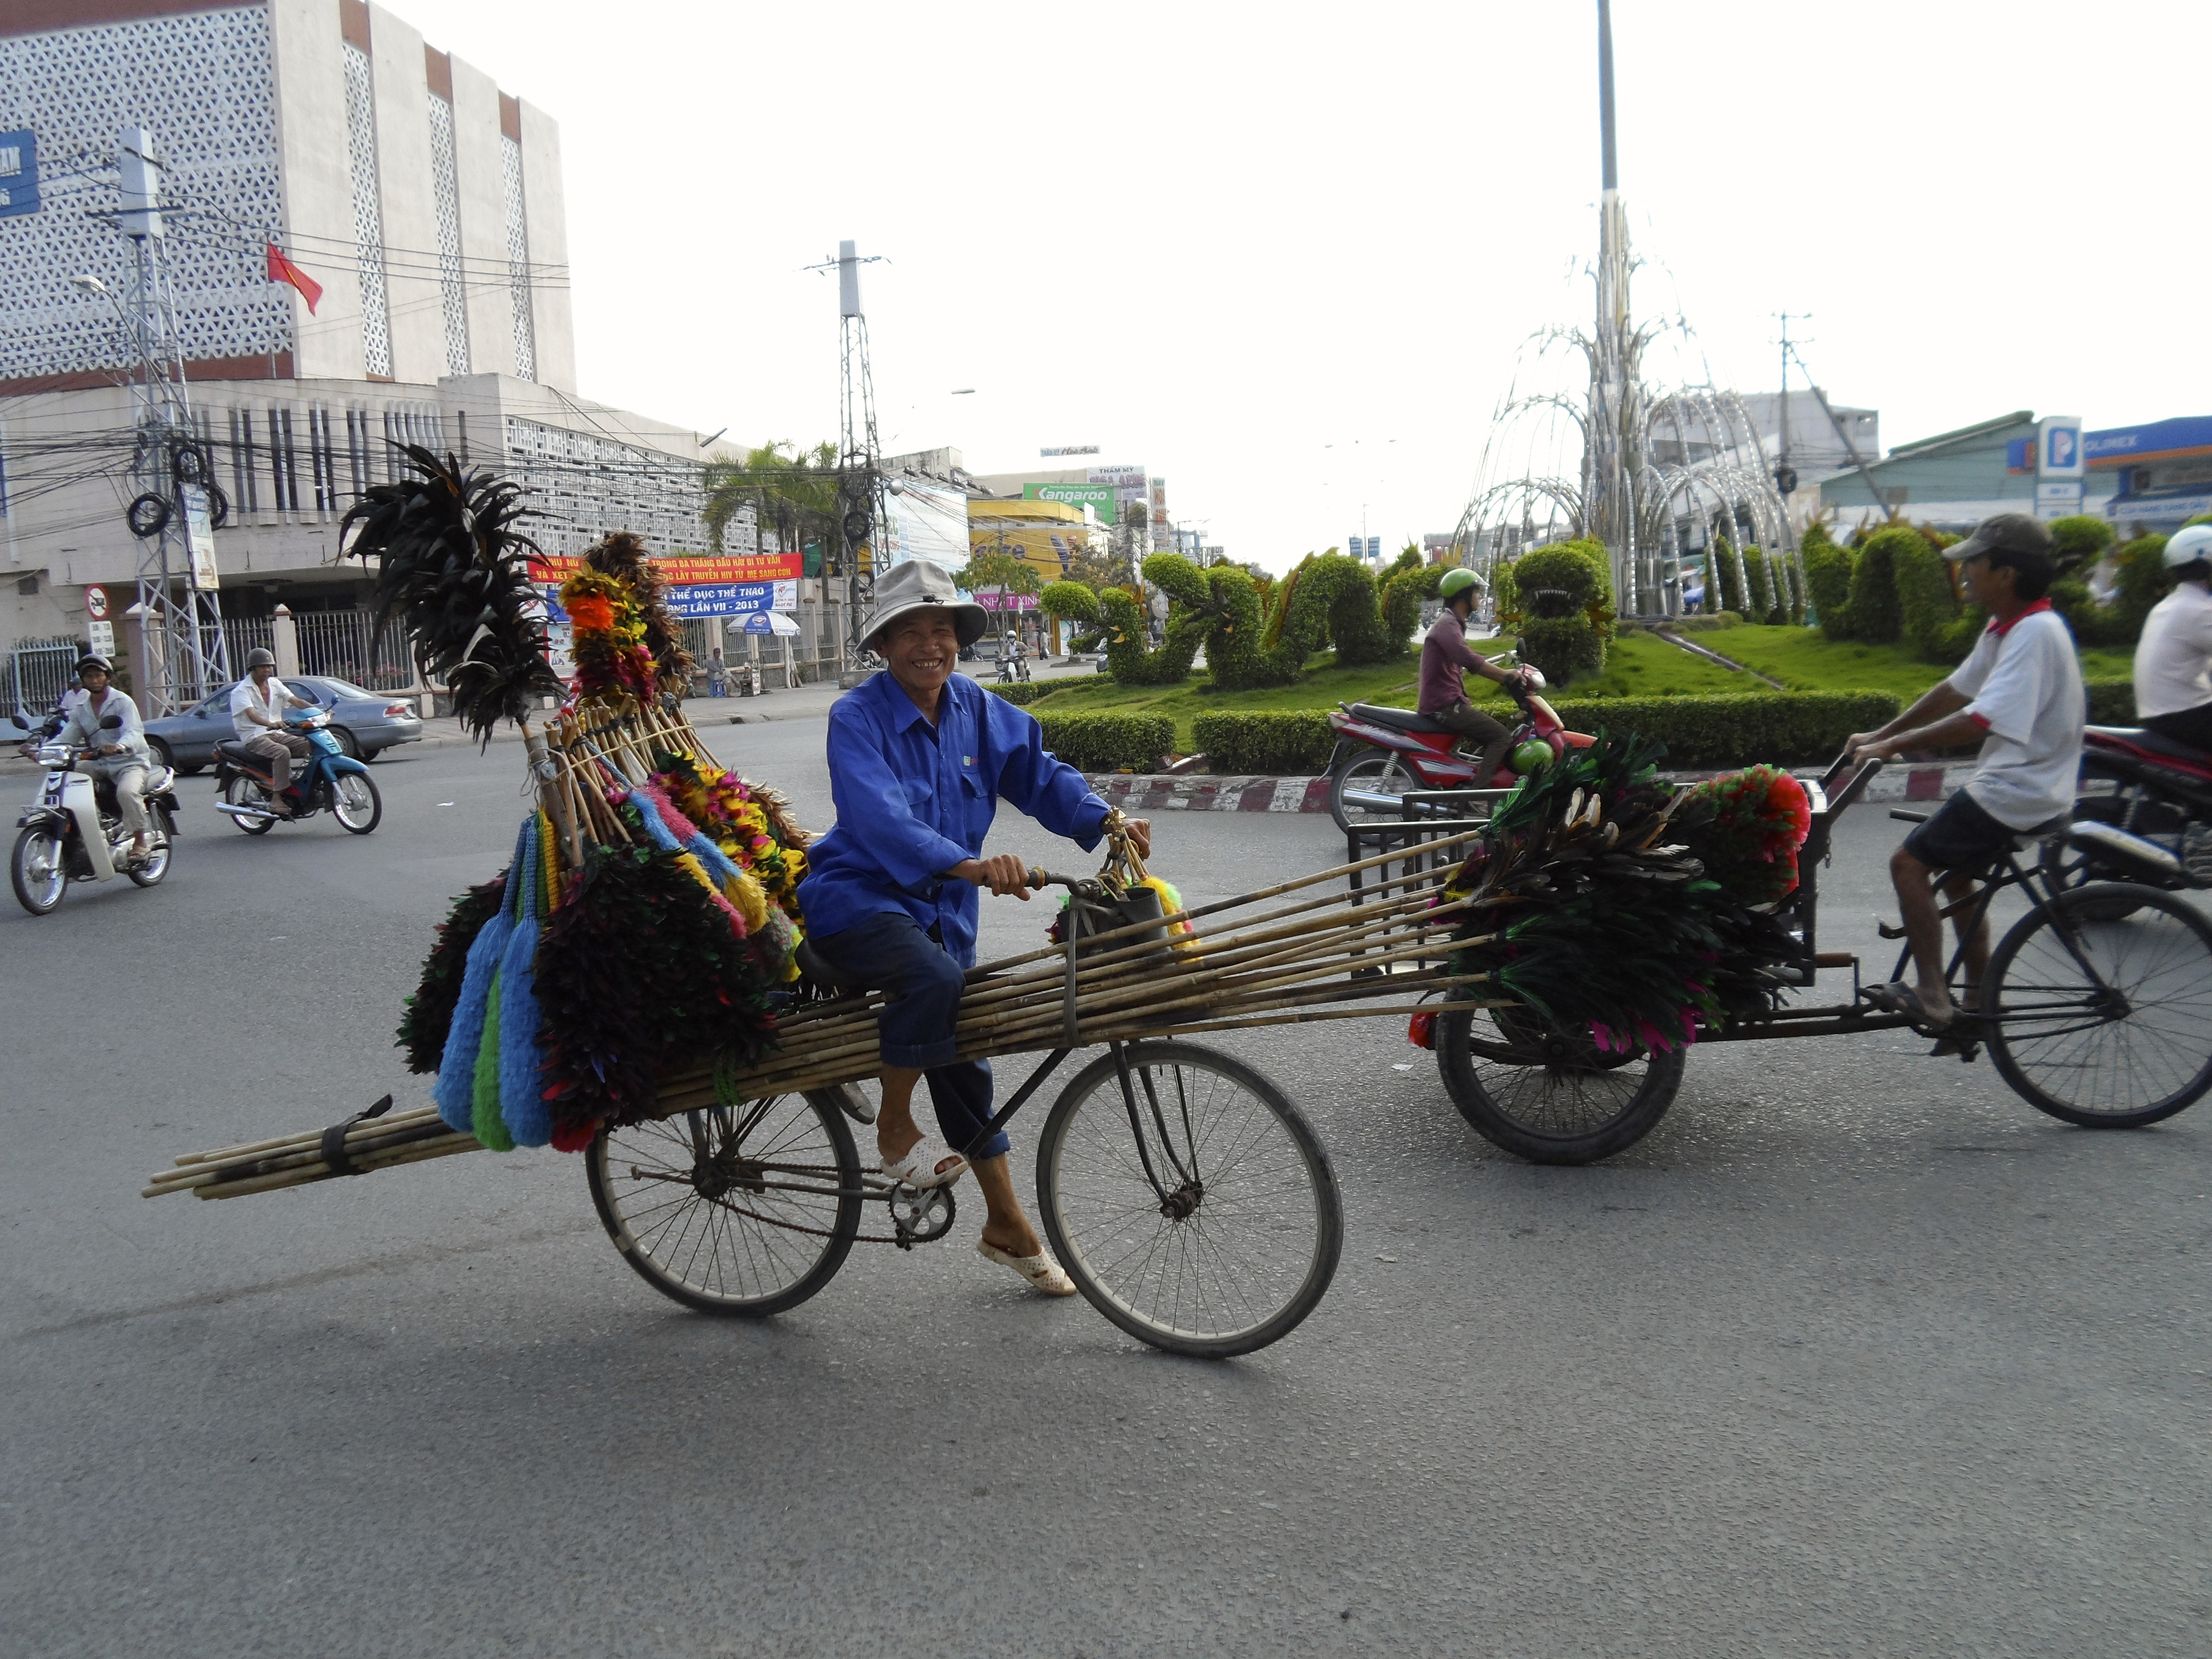 Images from Vietnam  - Images from Vietnam travels